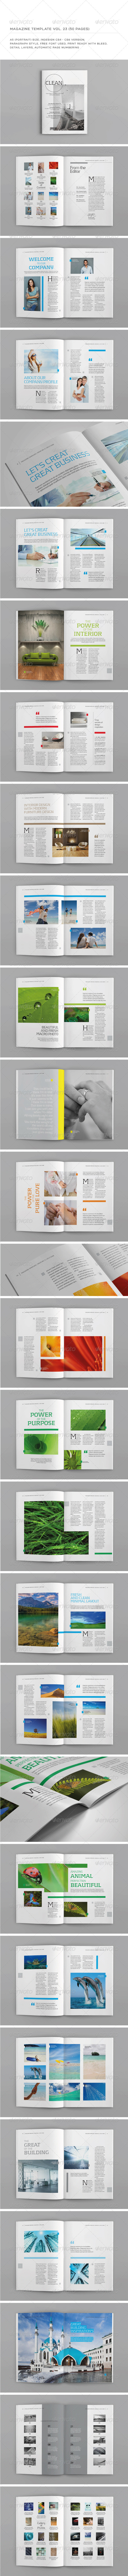 A5 Portrait 50 Pages MGZ (Vol. 23) - Magazines Print Templates